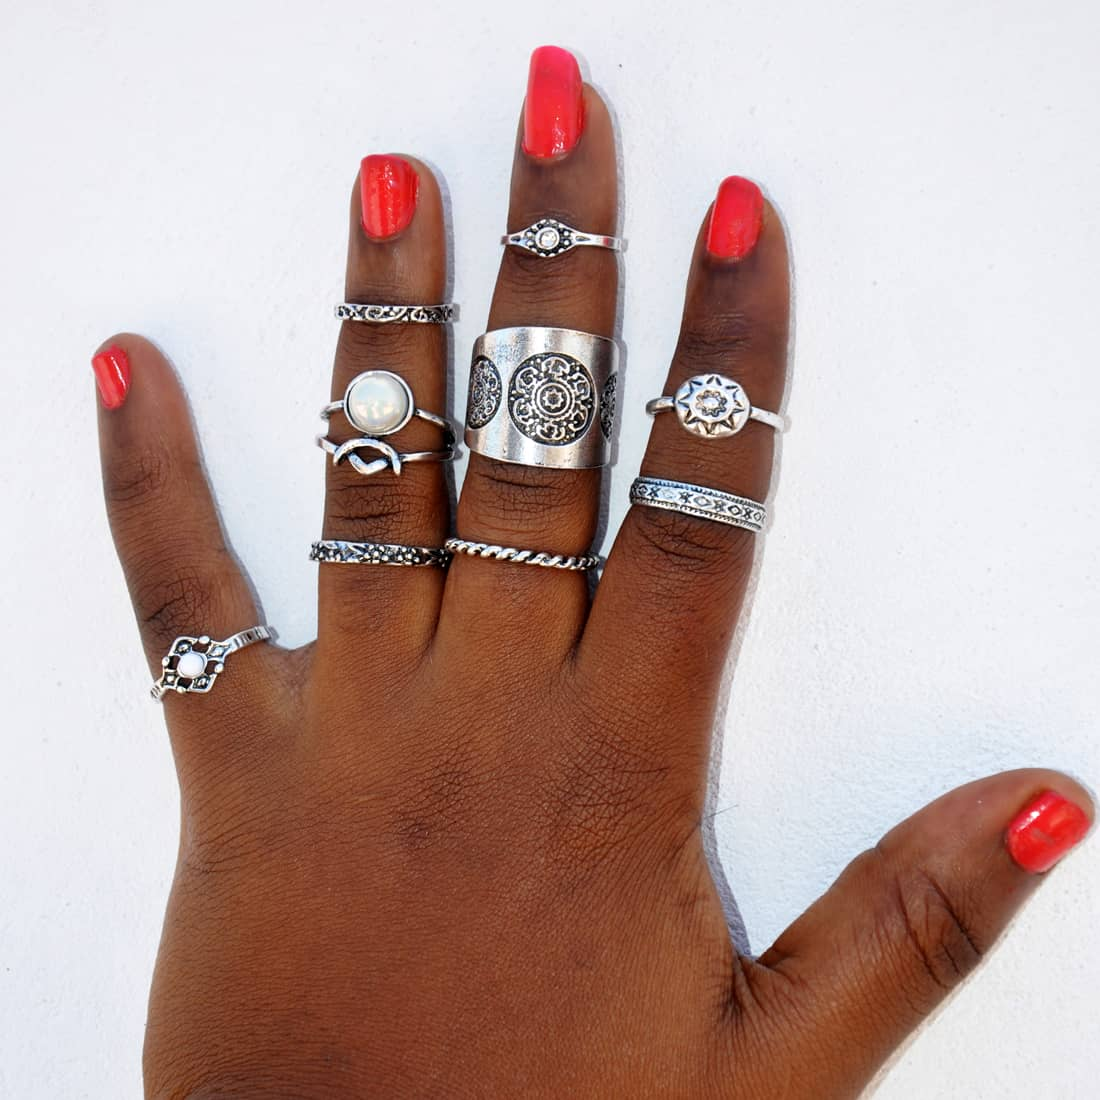 M0343 silver6 Jewelry Sets Rings maureens.com boutique